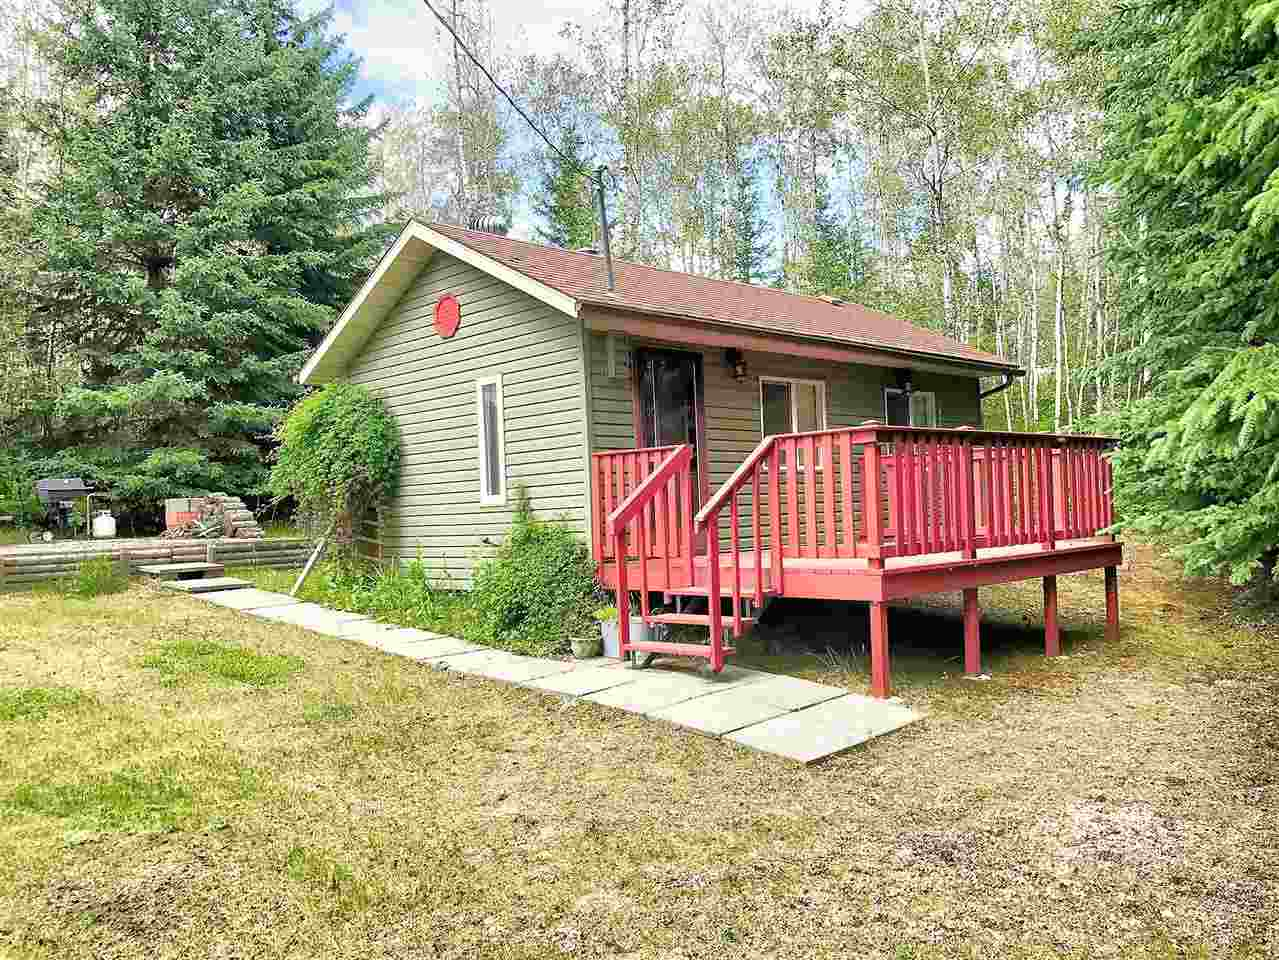 This sweet cabin at the lake is neat as a pin and sits on a nice private half acre lot. Trees all around the property create an oasis where you can sit on your patio or on your deck and enjoy your family and friends. The cabin has been beautifully maintained and is set up for ease of use. The fifth wheel comes with the property and gives you guest quarters for when you entertain.  This is a great package and will appeal to those that are looking for an idyllic getaway place!